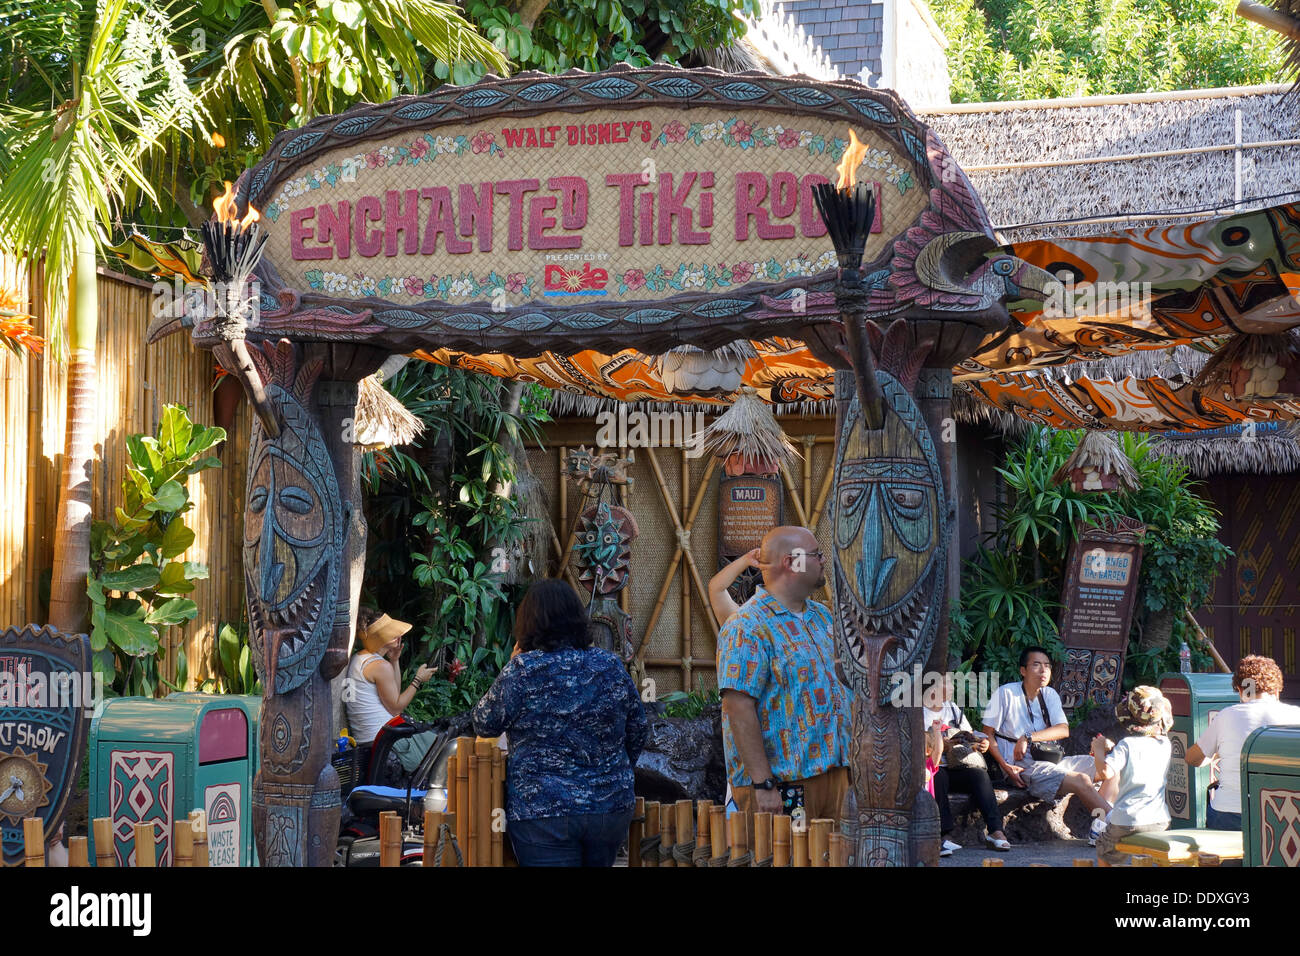 Verzaubert Tiki Room, Disneyland Resort, Magic Kingdom, Anaheim, Kalifornien Stockbild